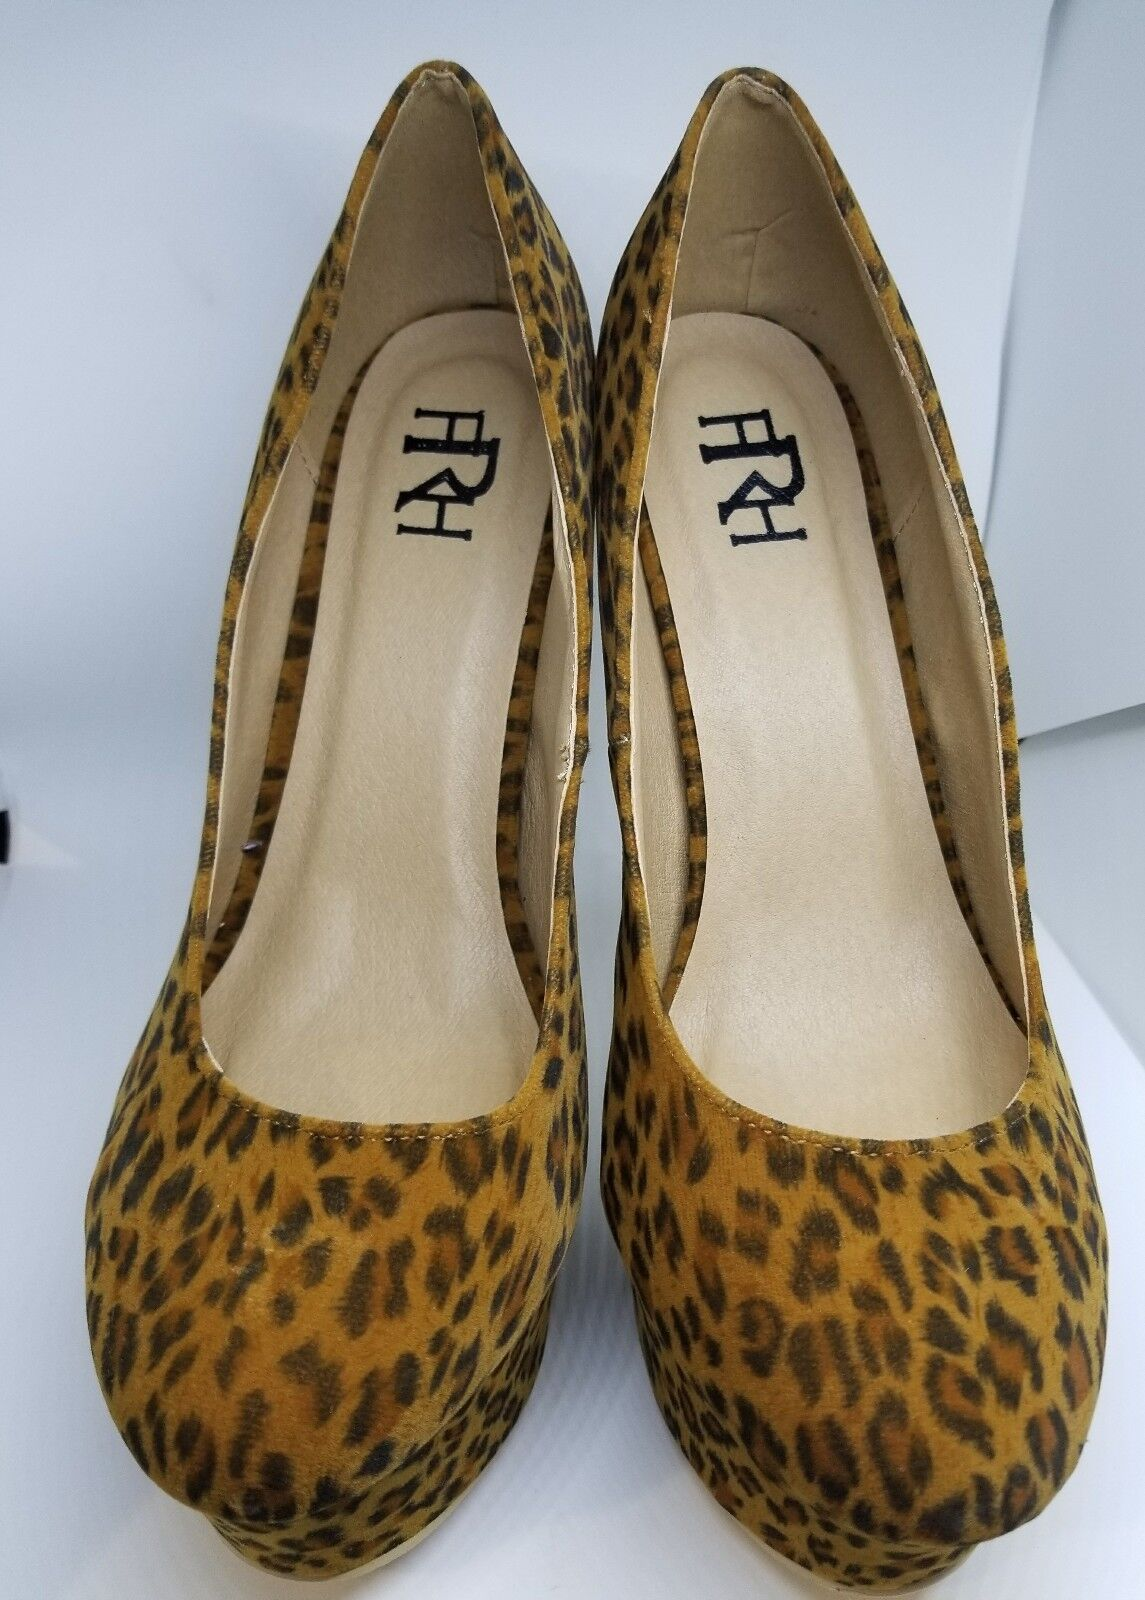 NEW fRh Women's leopard print suede Stilettos heels Shoes 5